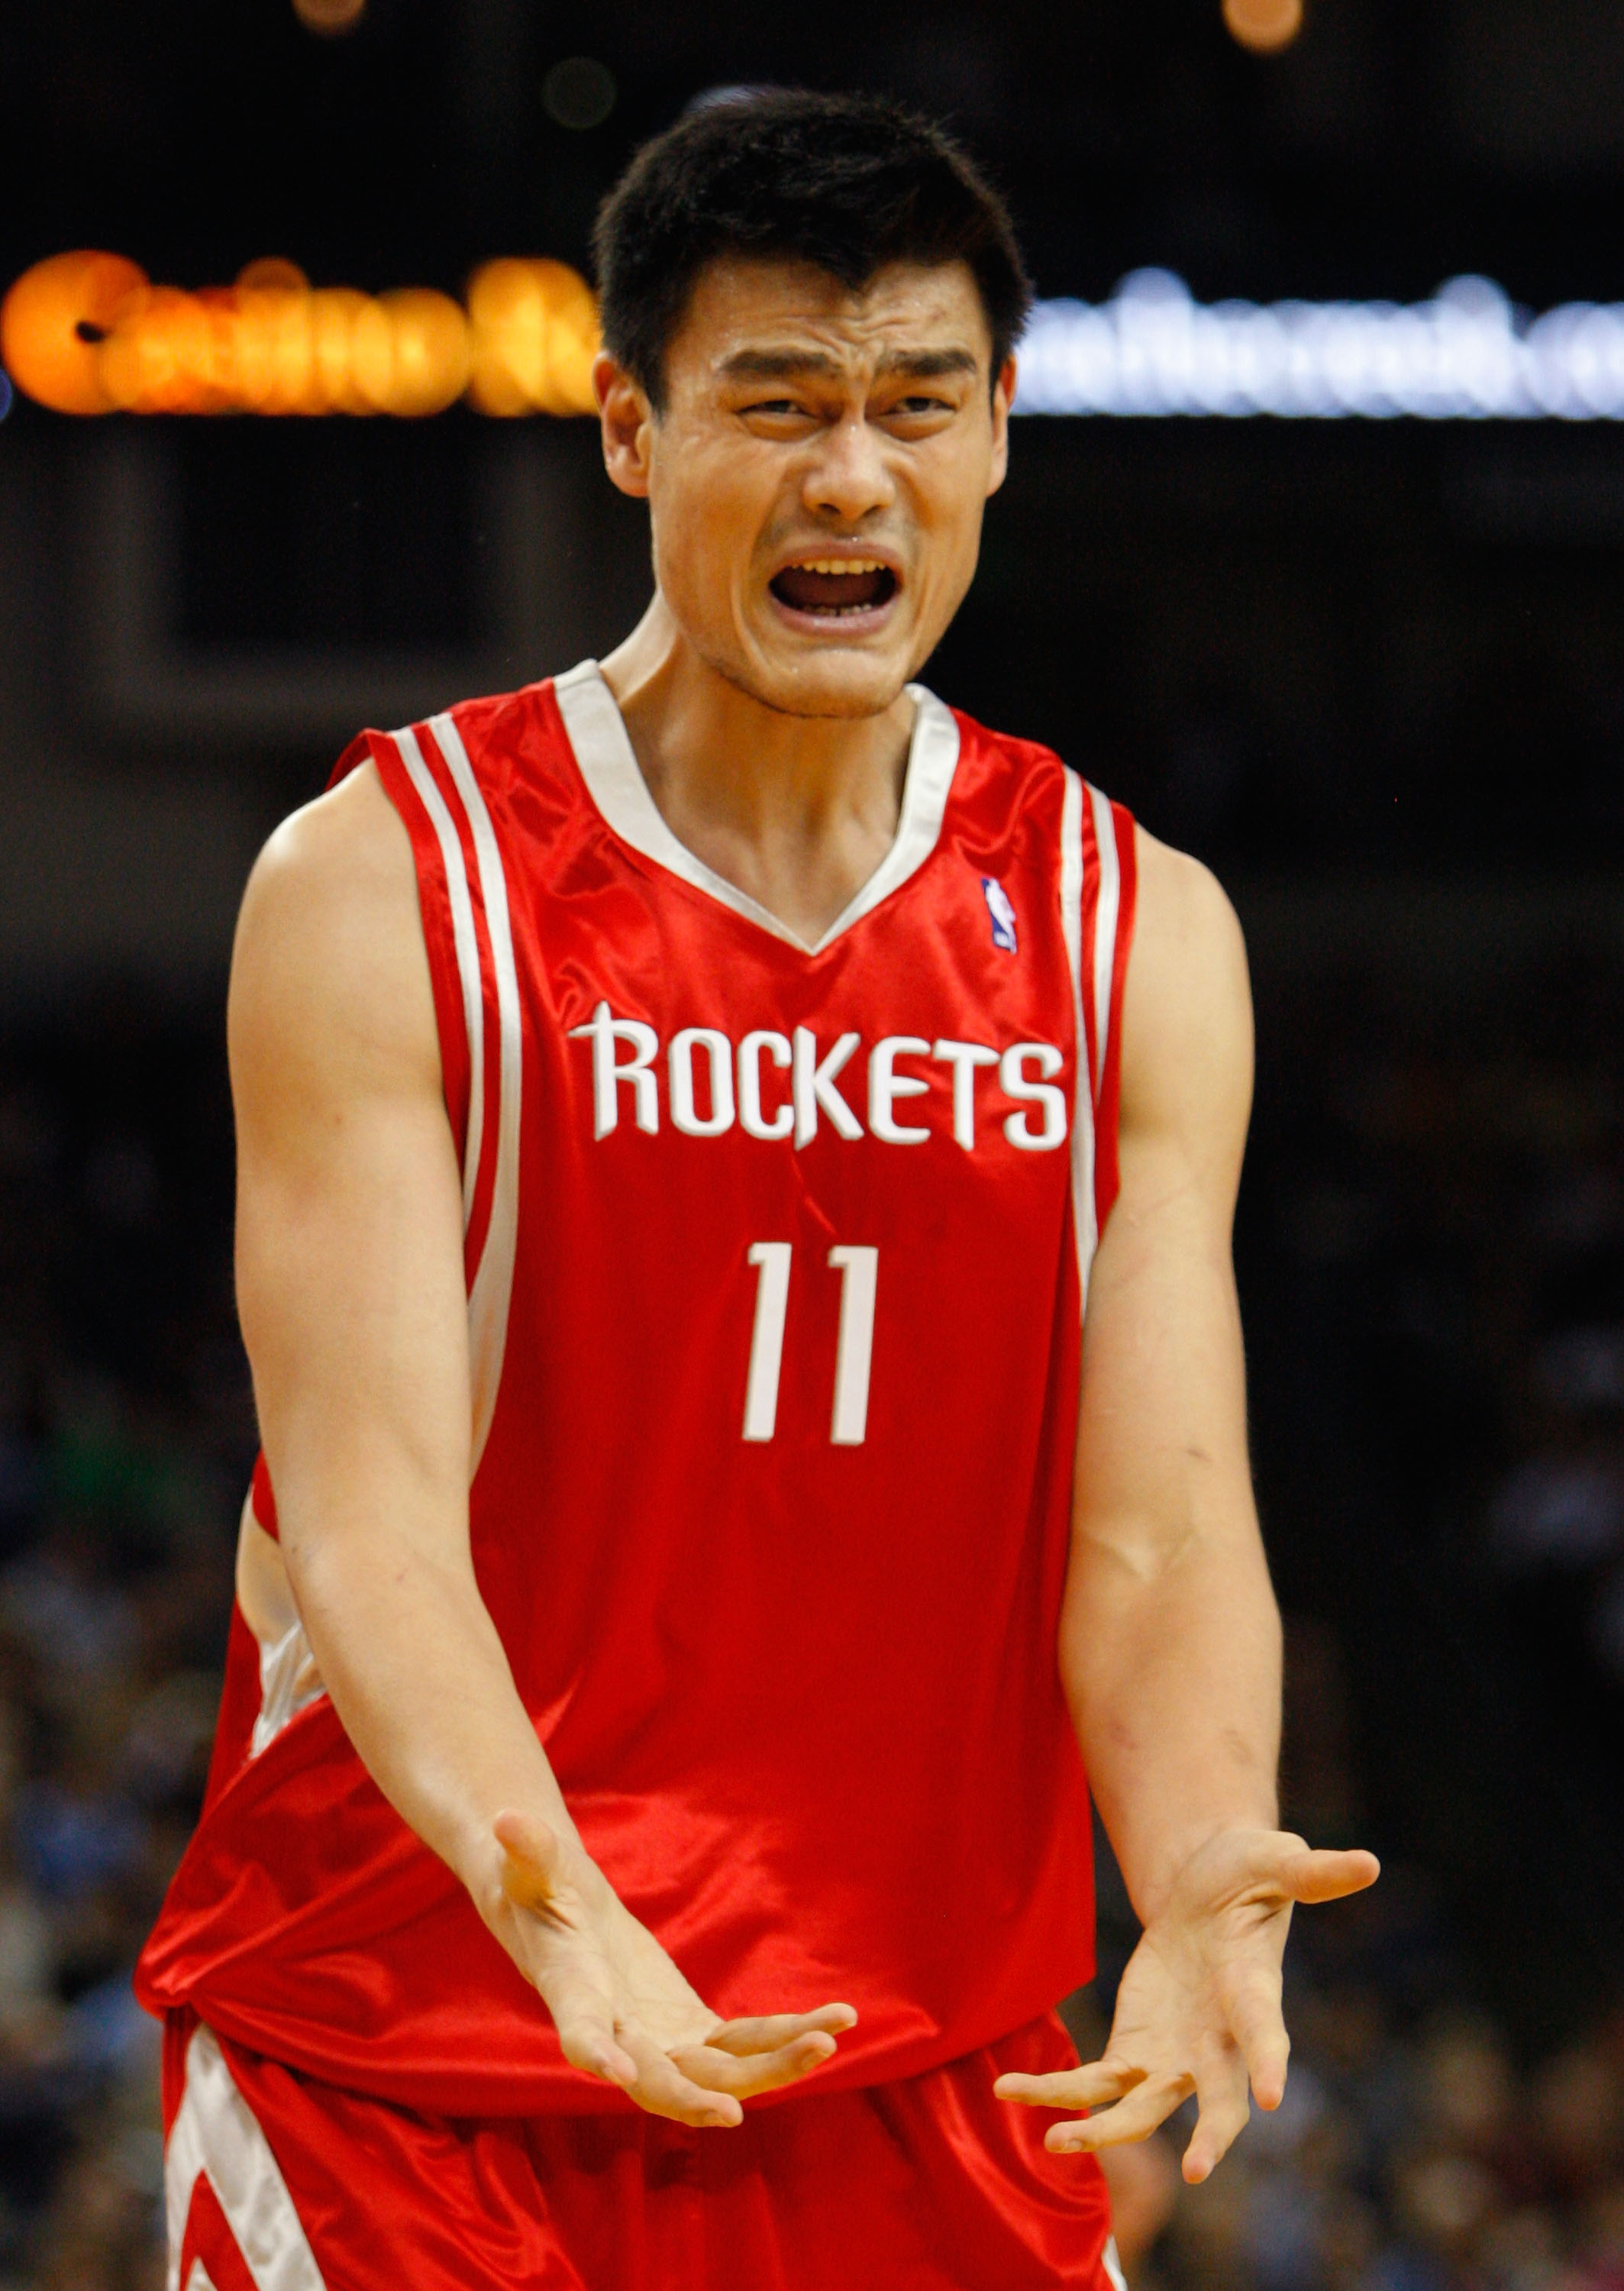 OAKLAND, CA - NOVEMBER 29:  Yao Ming #11 of the Houston Rockets reacts to a call during the first half against the Golden State Warriors  November 29, 2007 at the Oracle Arena in Oakland, California.  (Photo by Justin Sullivan/Getty Images)